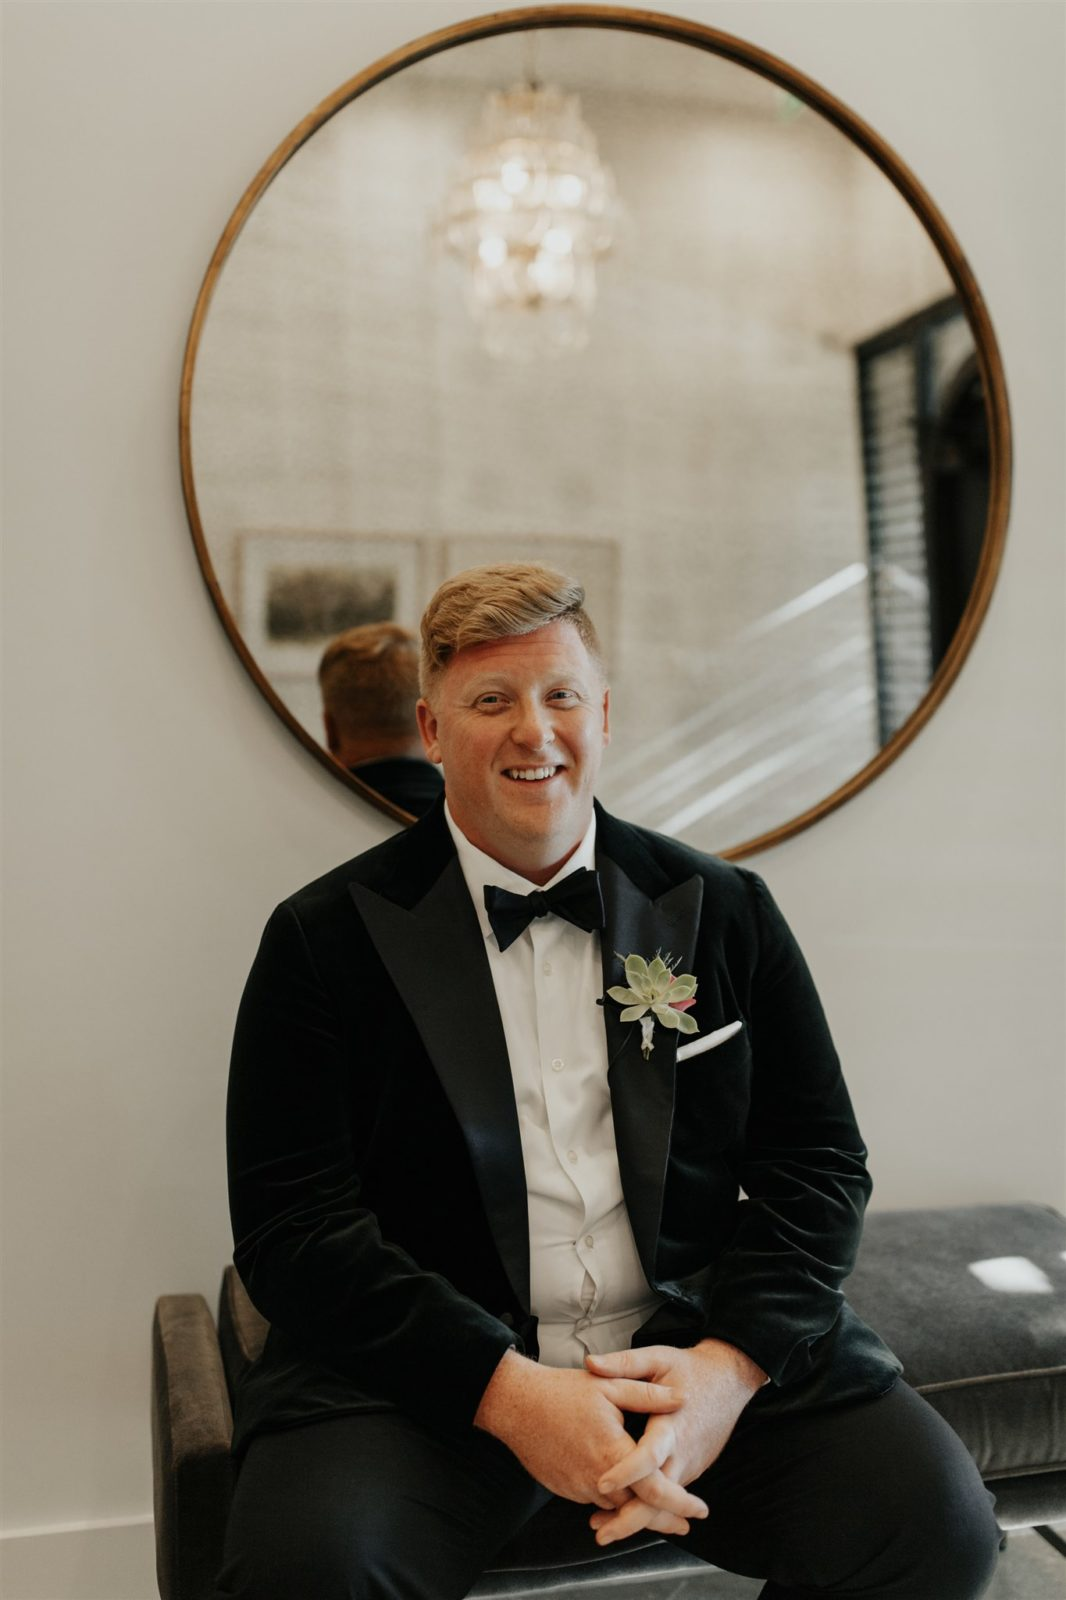 Grooms Portrait by DFW Photographer Madeline Shea